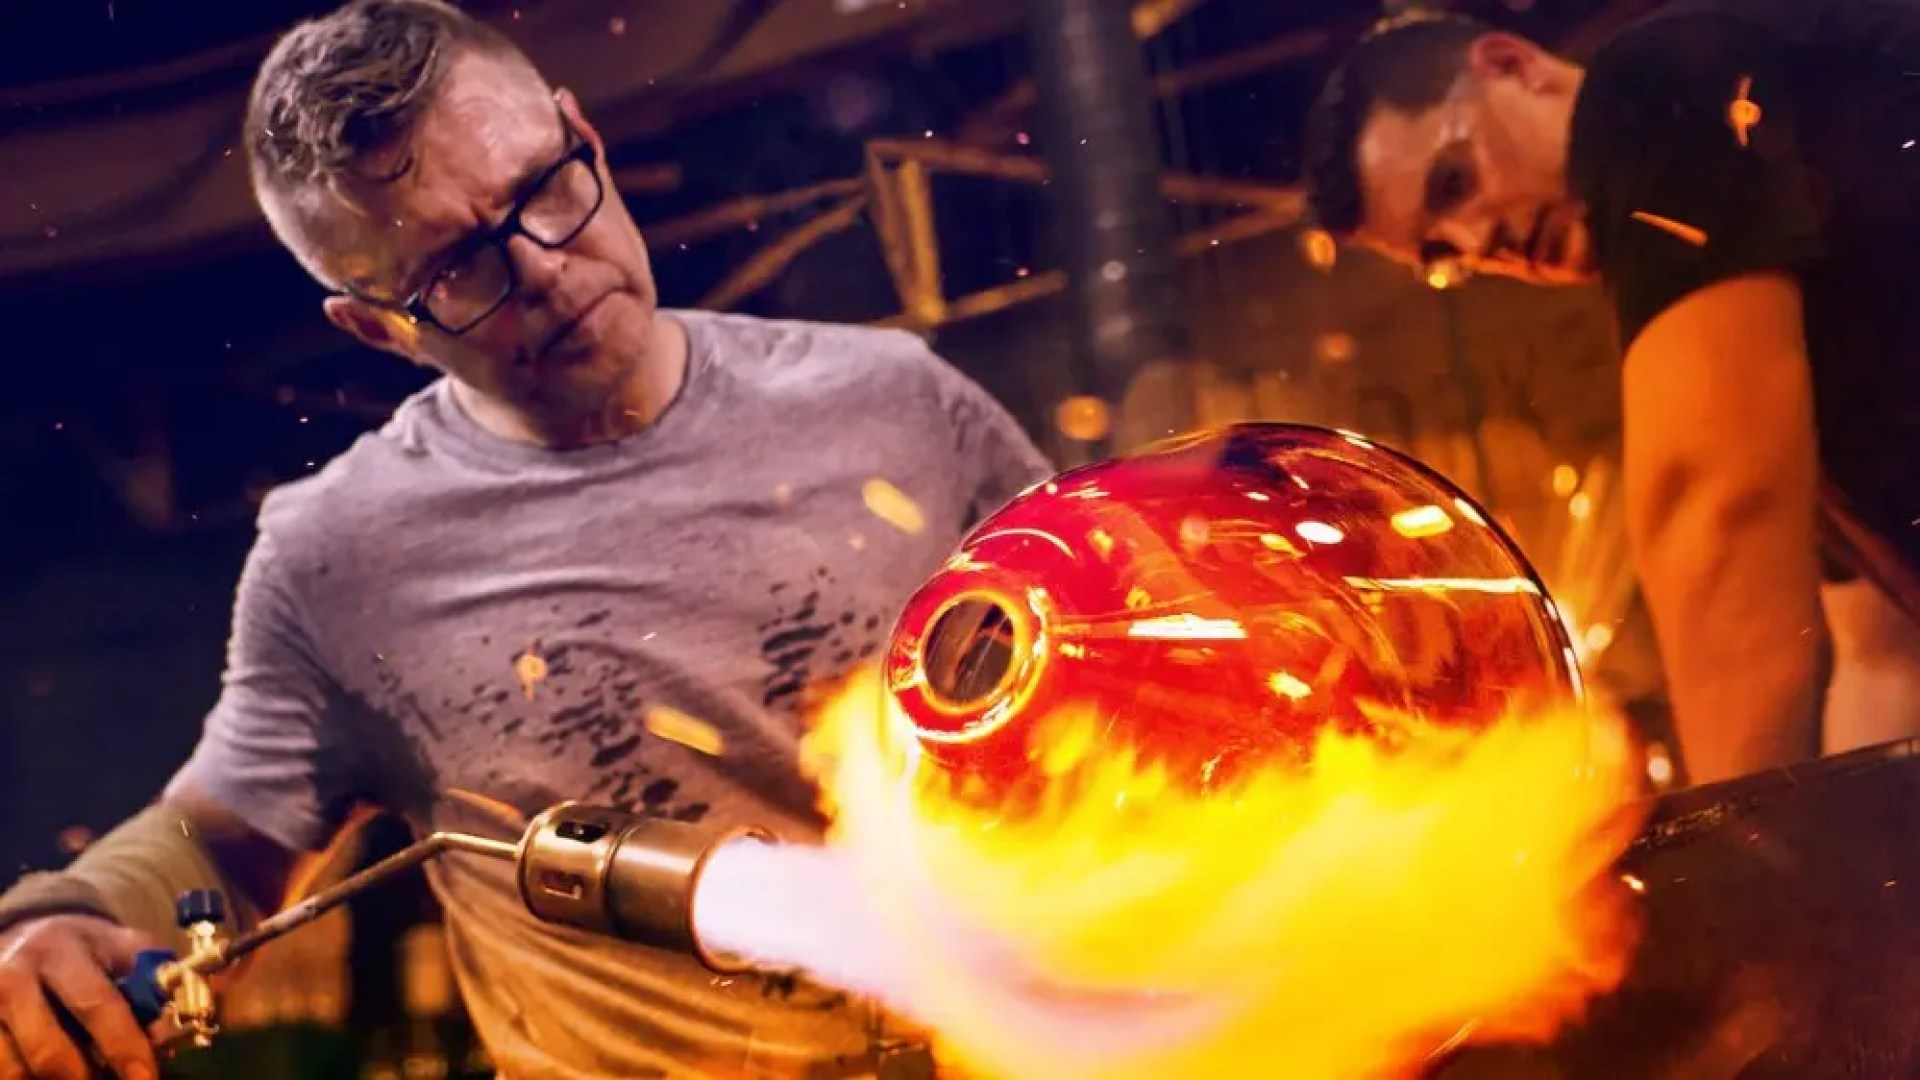 A glassblower on the show 'Blown Away' sculpting molten glass.